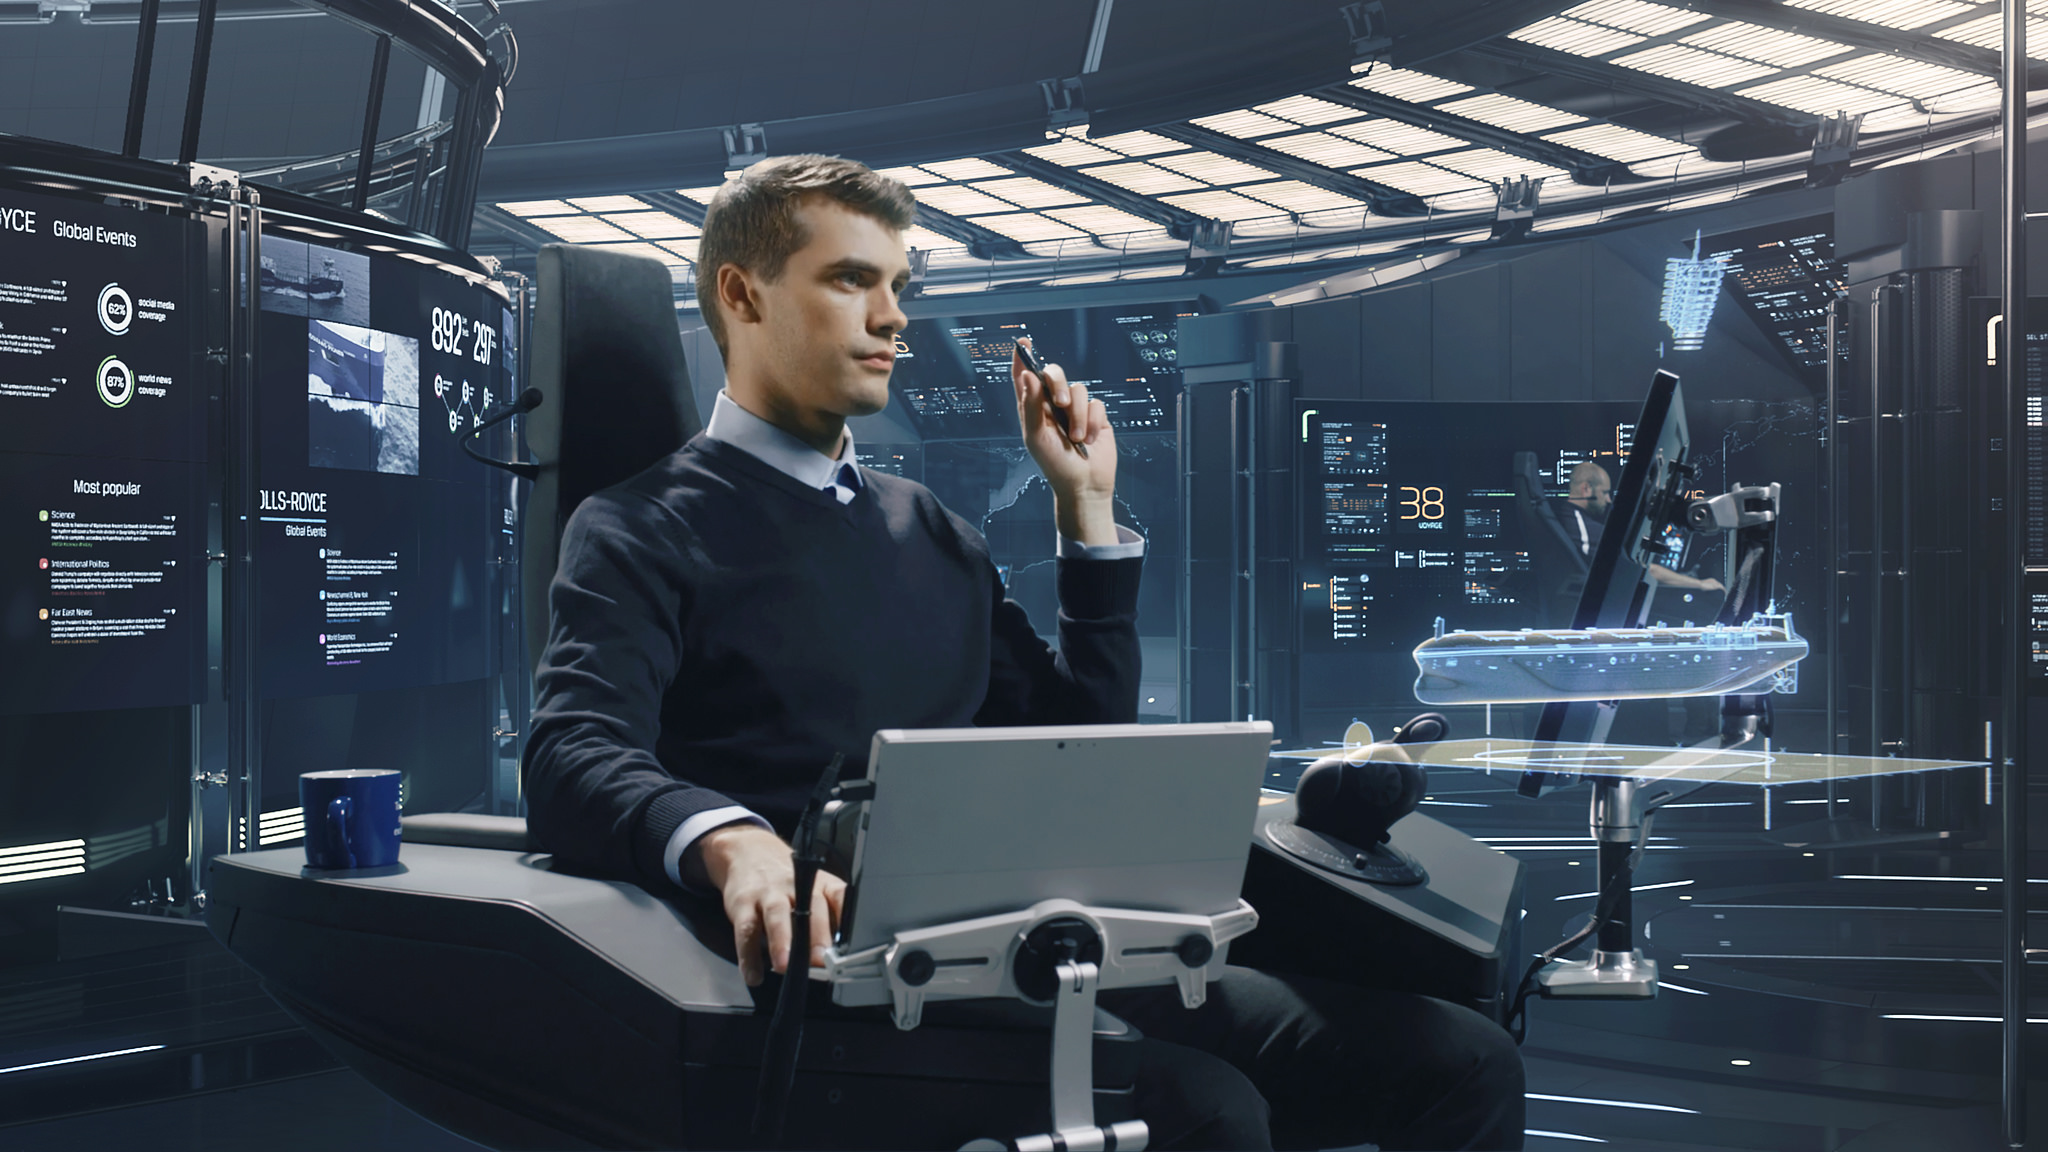 Rolls Royce Designed A Robot Boat Control Center That